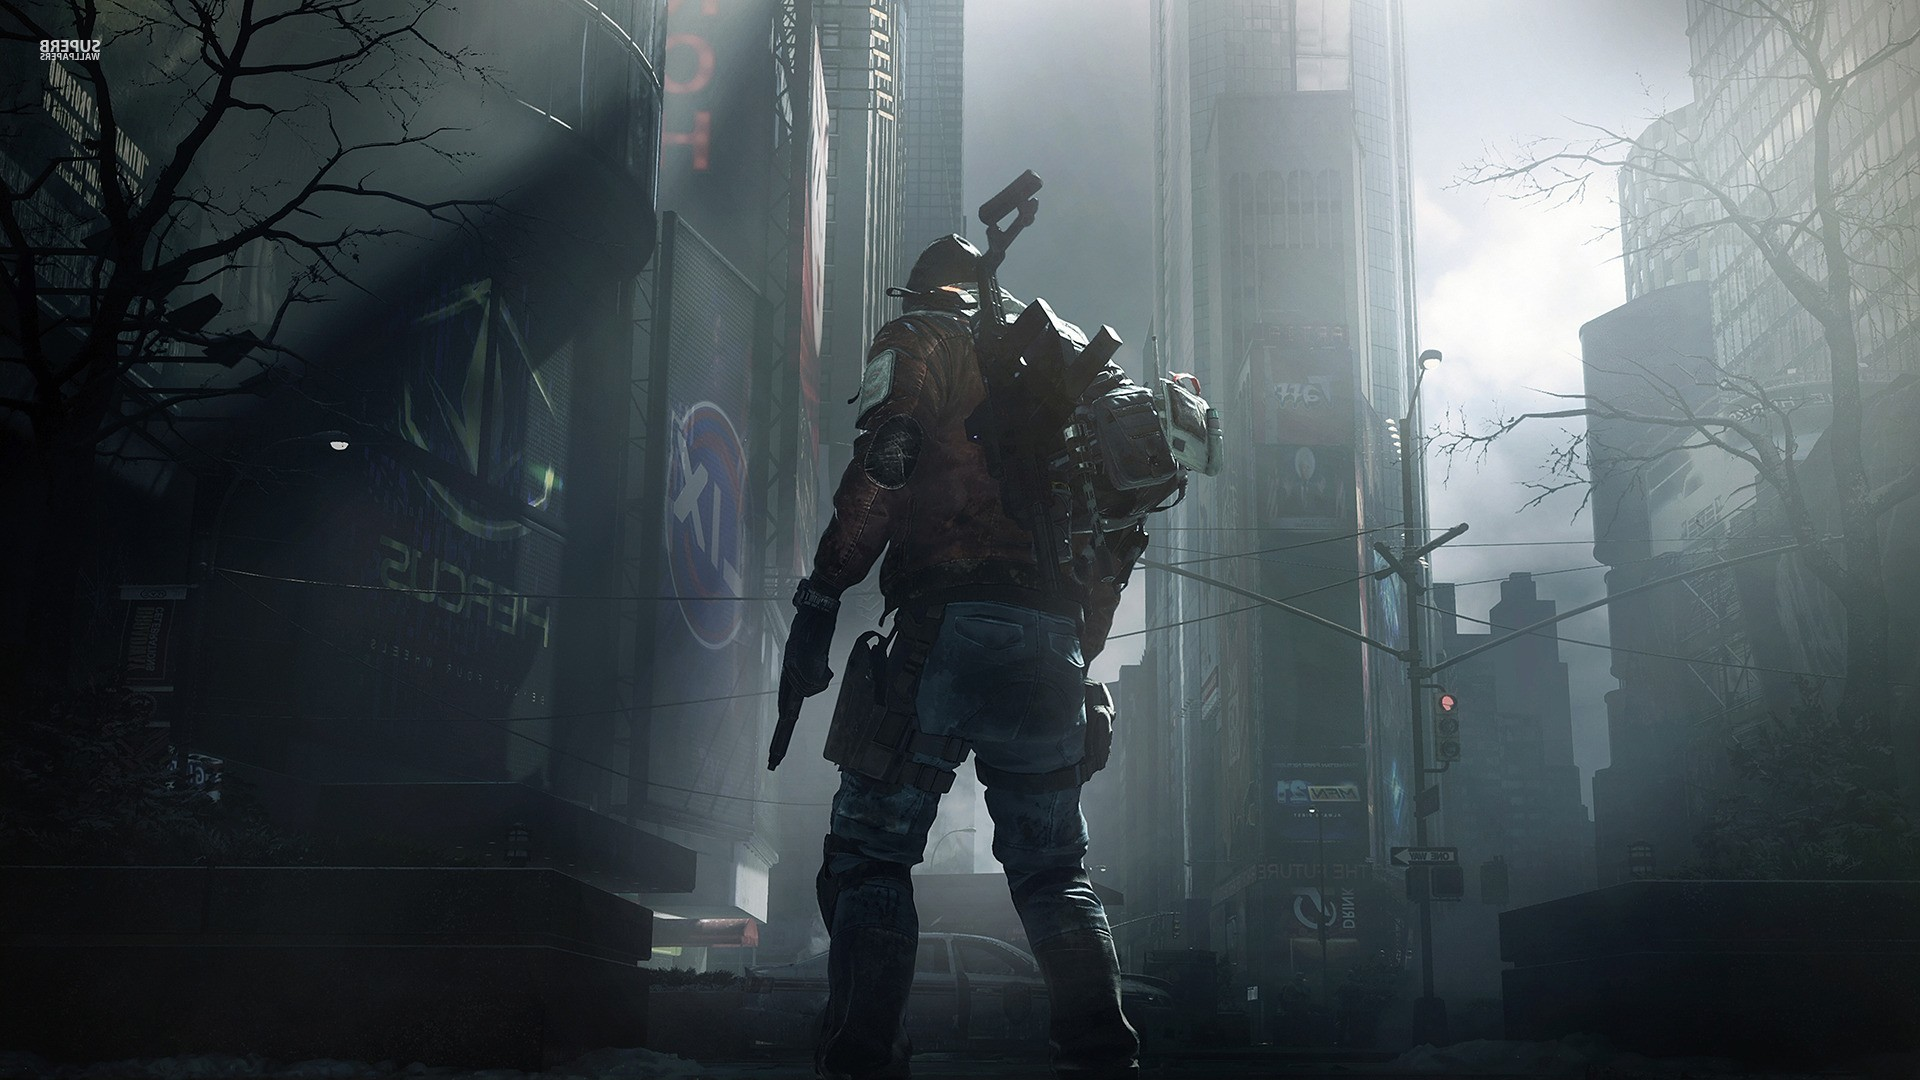 Tom Clancys The Division Game 2048×1152 Resolution